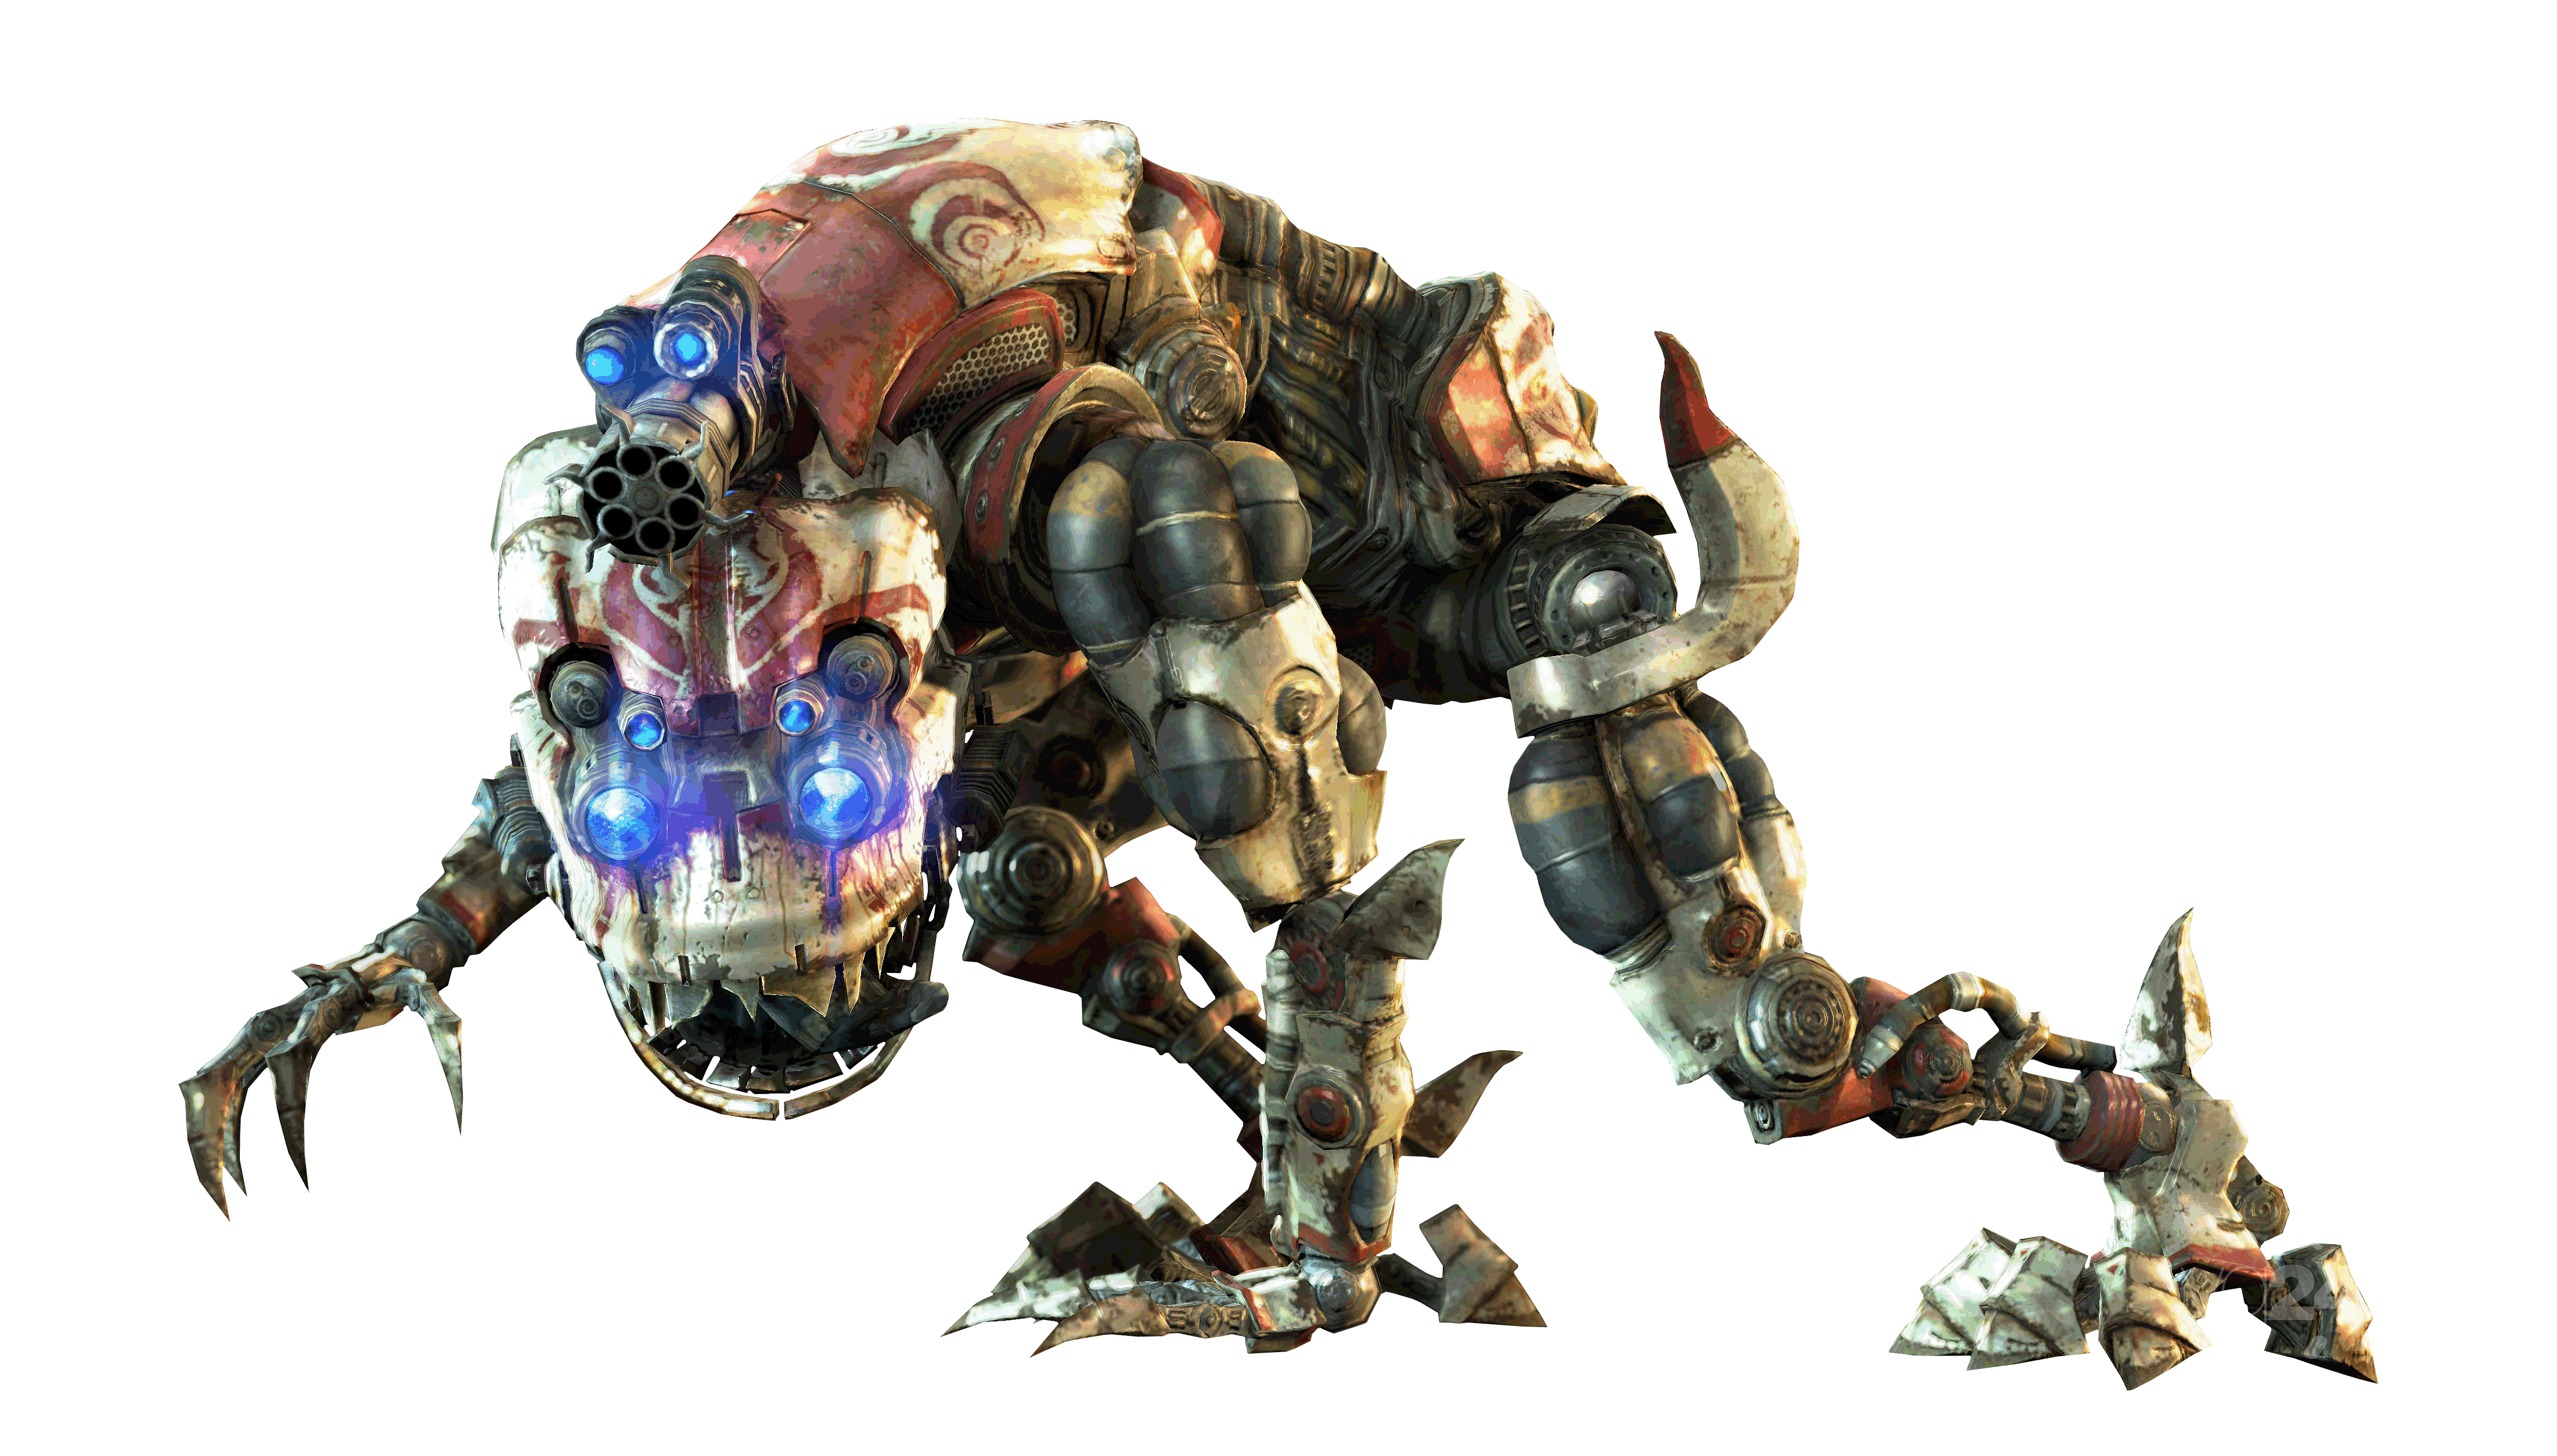 Mech-Dog Render by The-Blacklisted